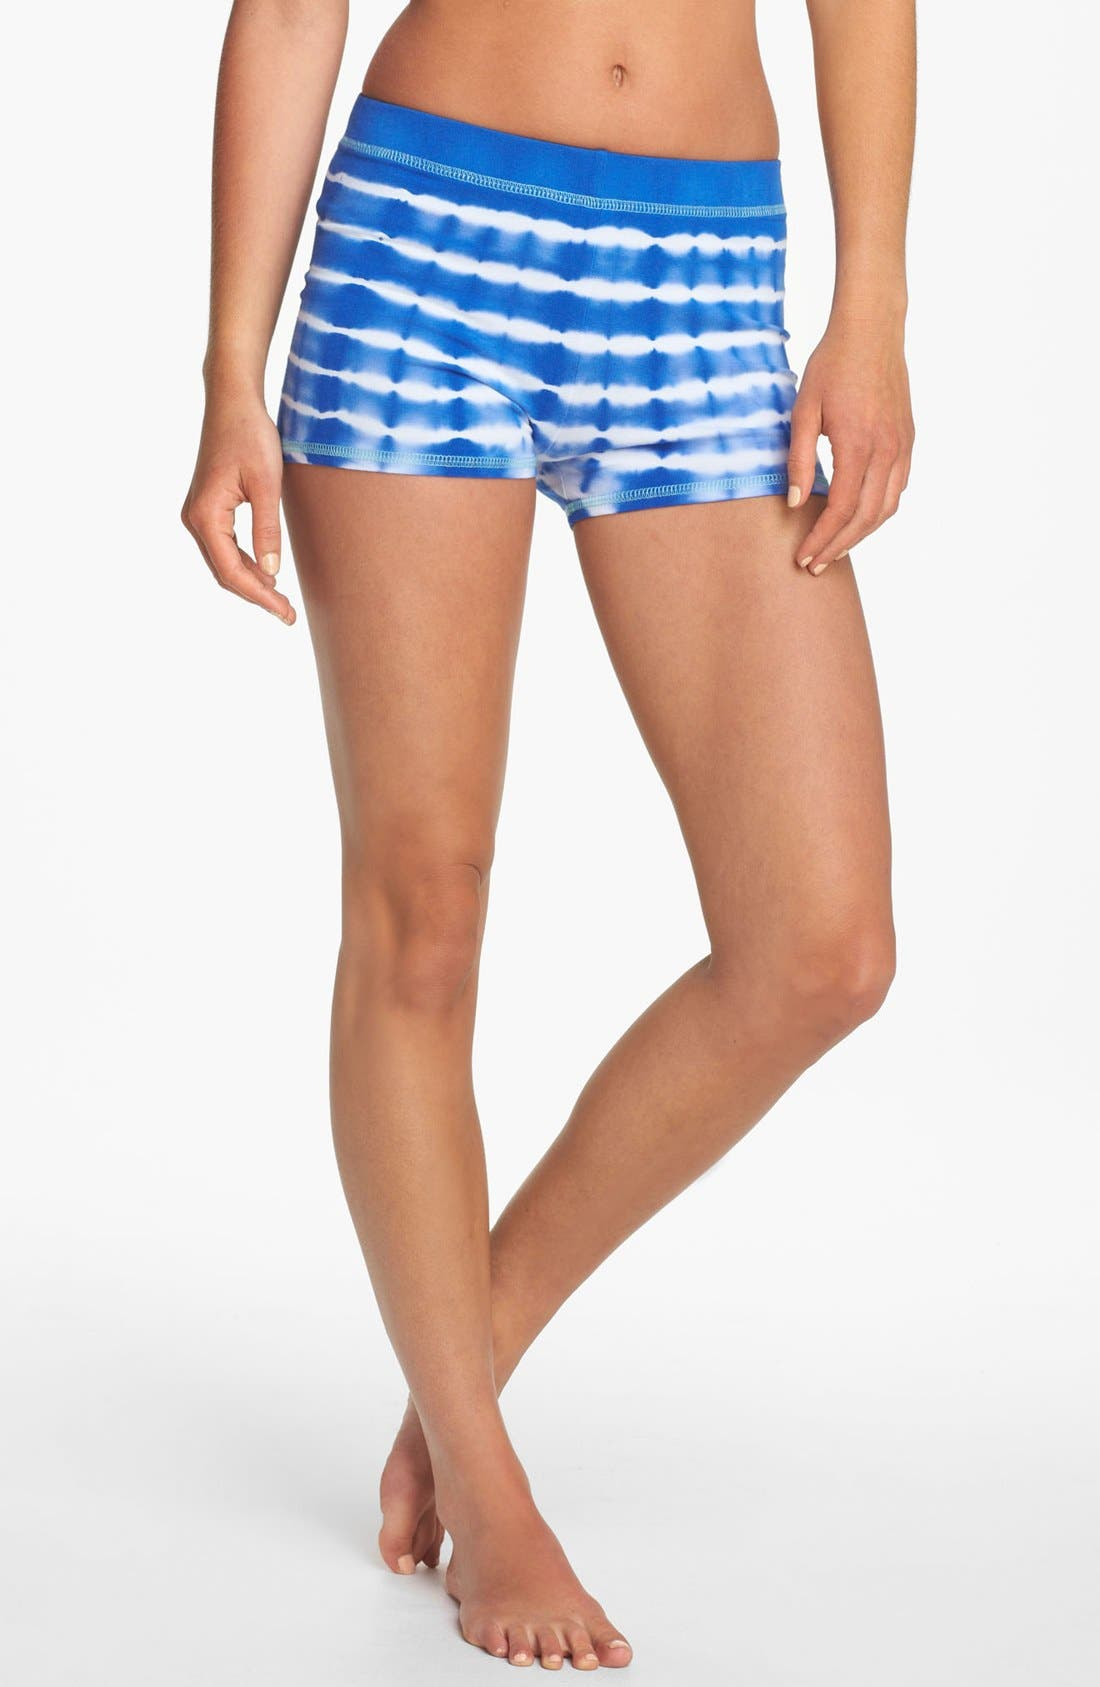 Alternate Image 1 Selected - Solow Tie Dye Yoga Shorts